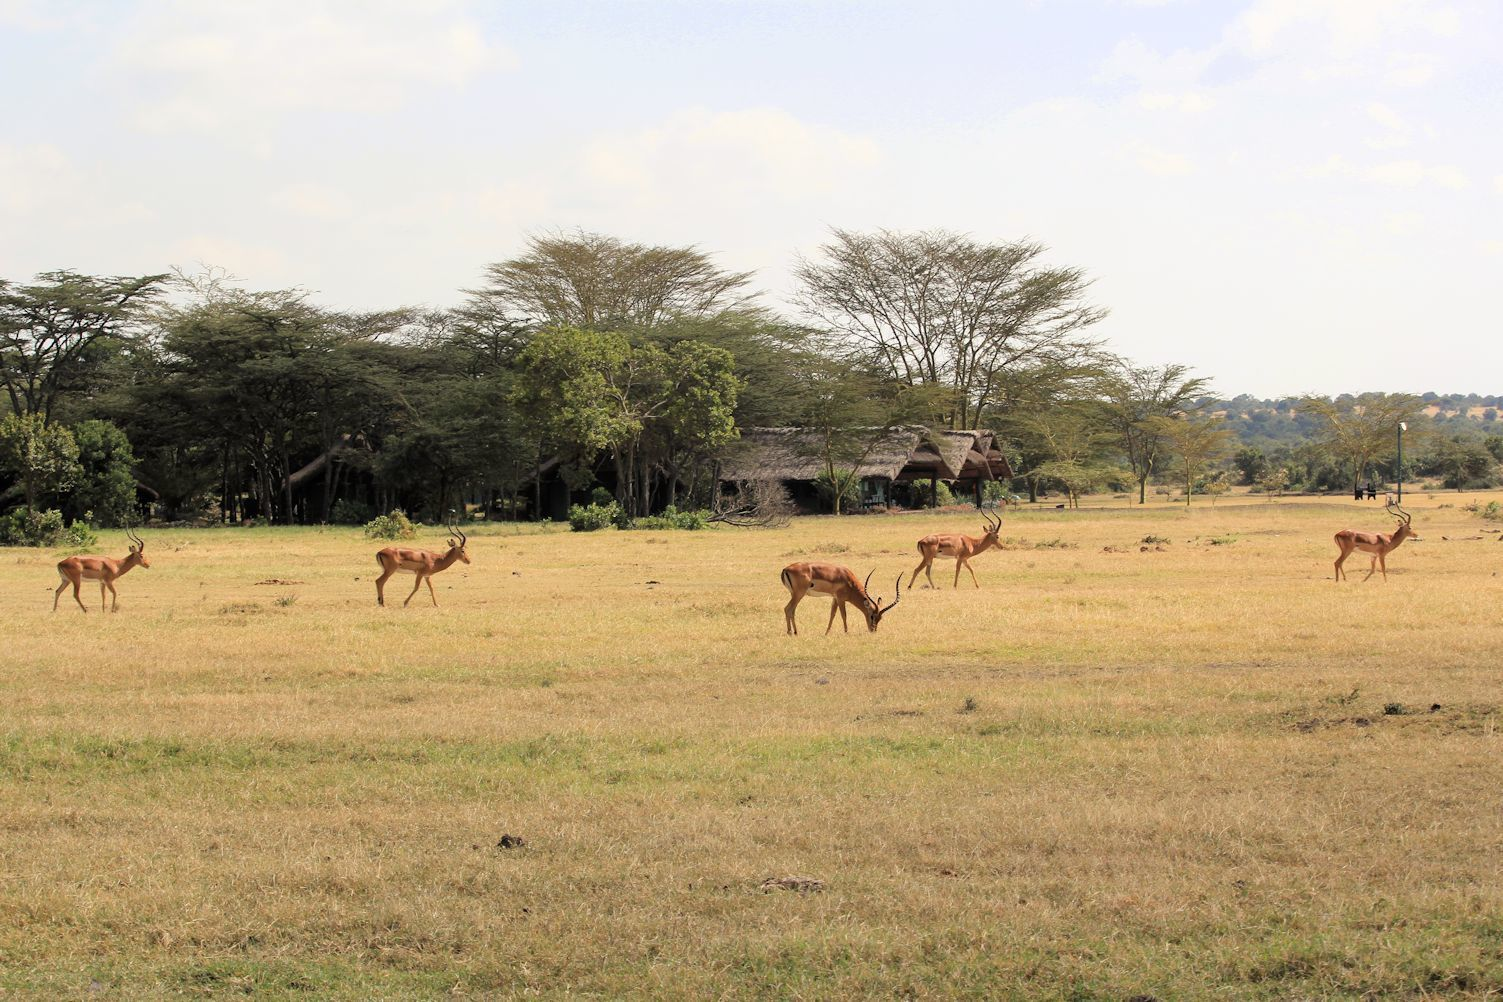 Impalas near the water hole